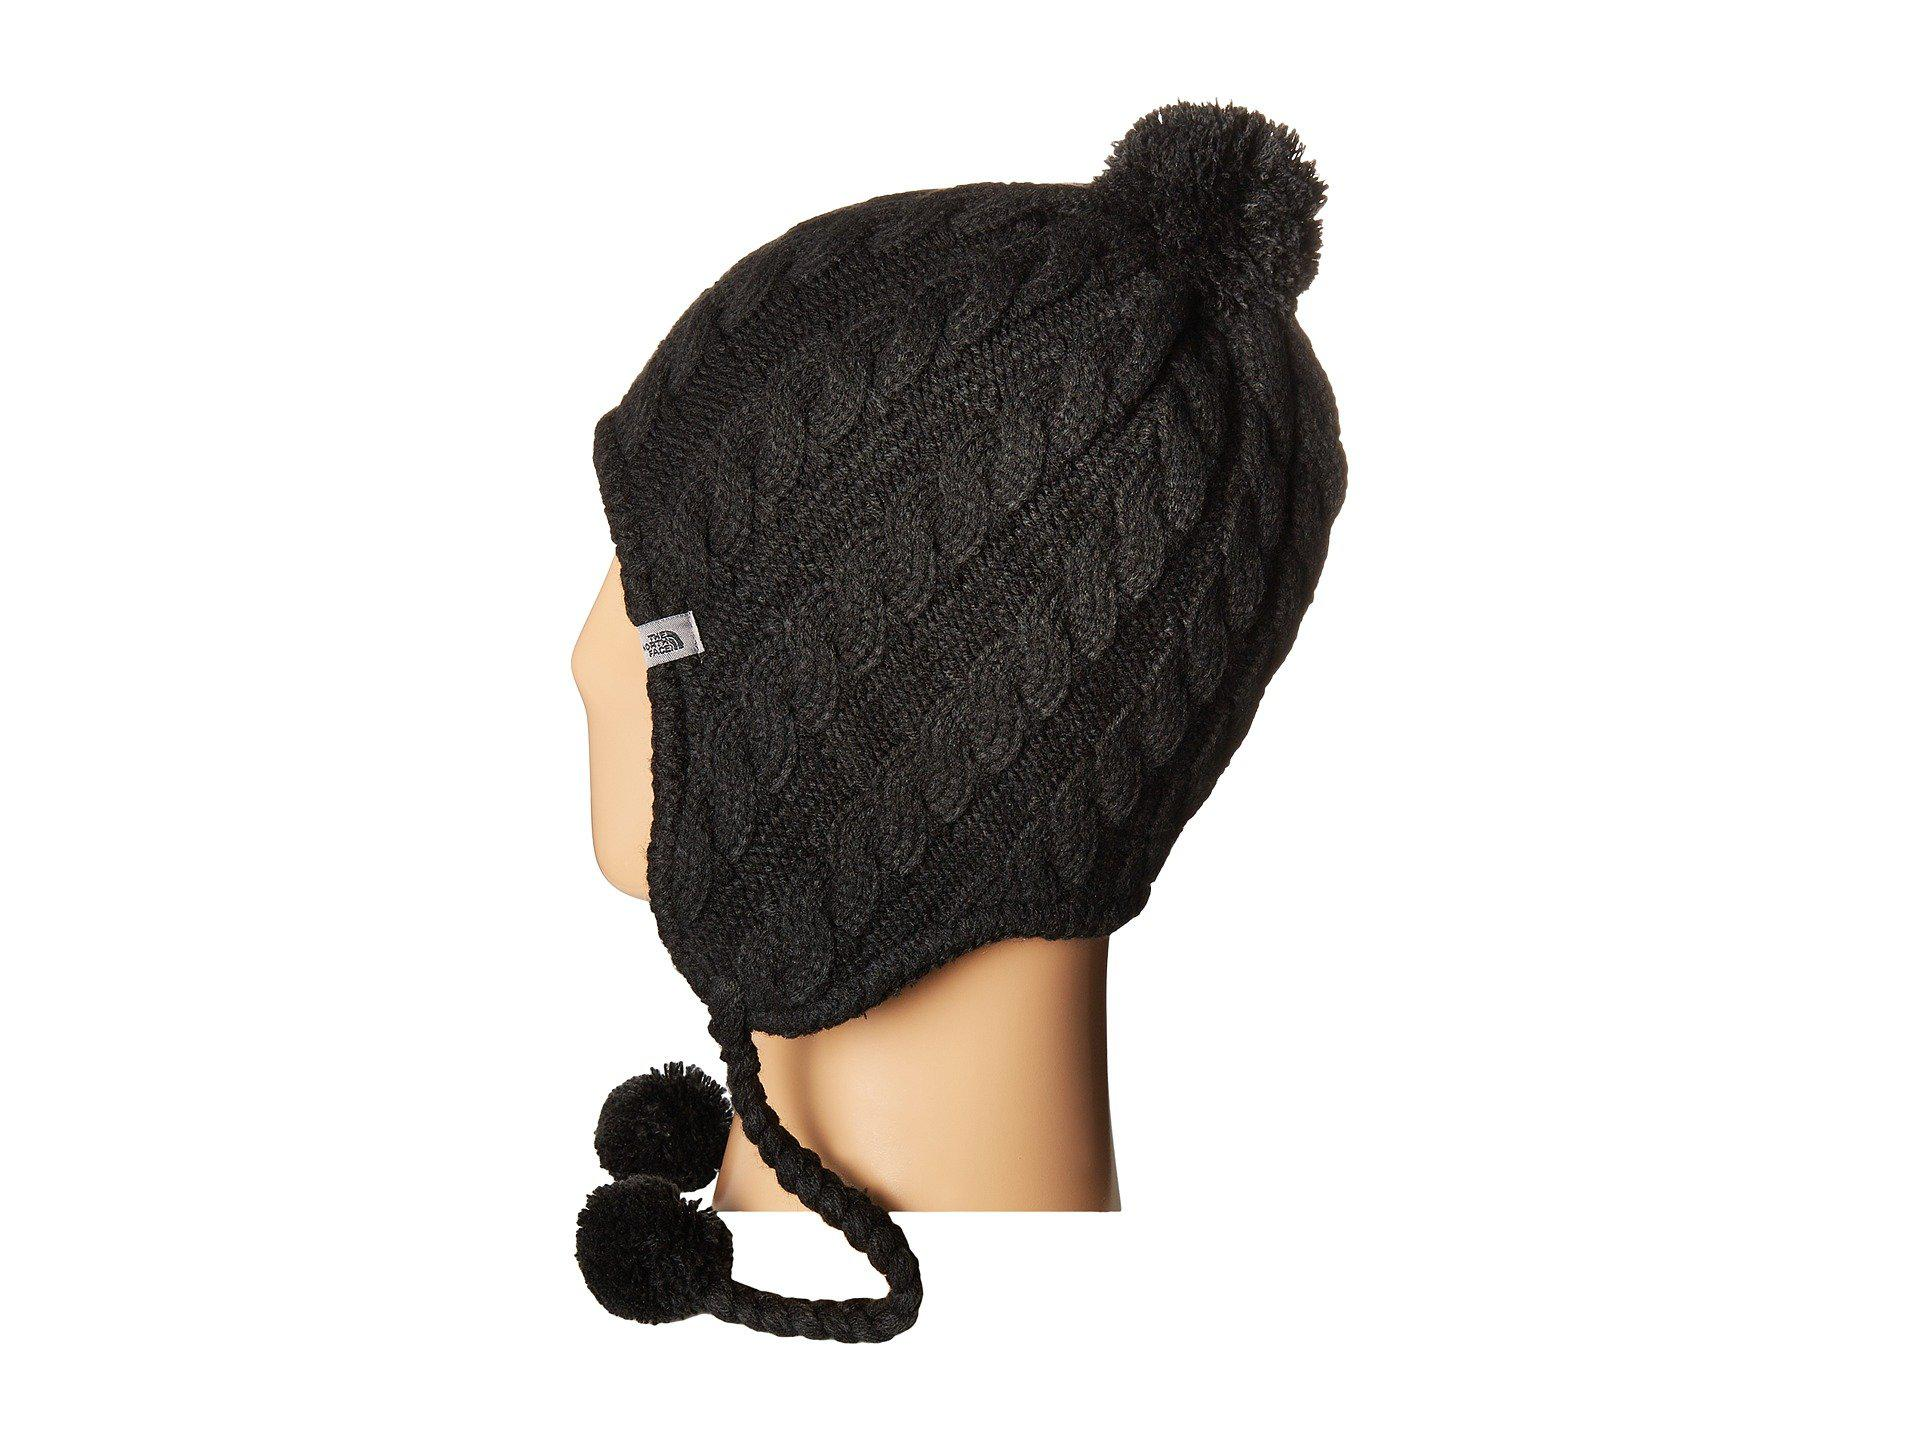 new style 64c4a 35ded The North Face Fuzzy Earflap Beanie in Black for Men - Lyst